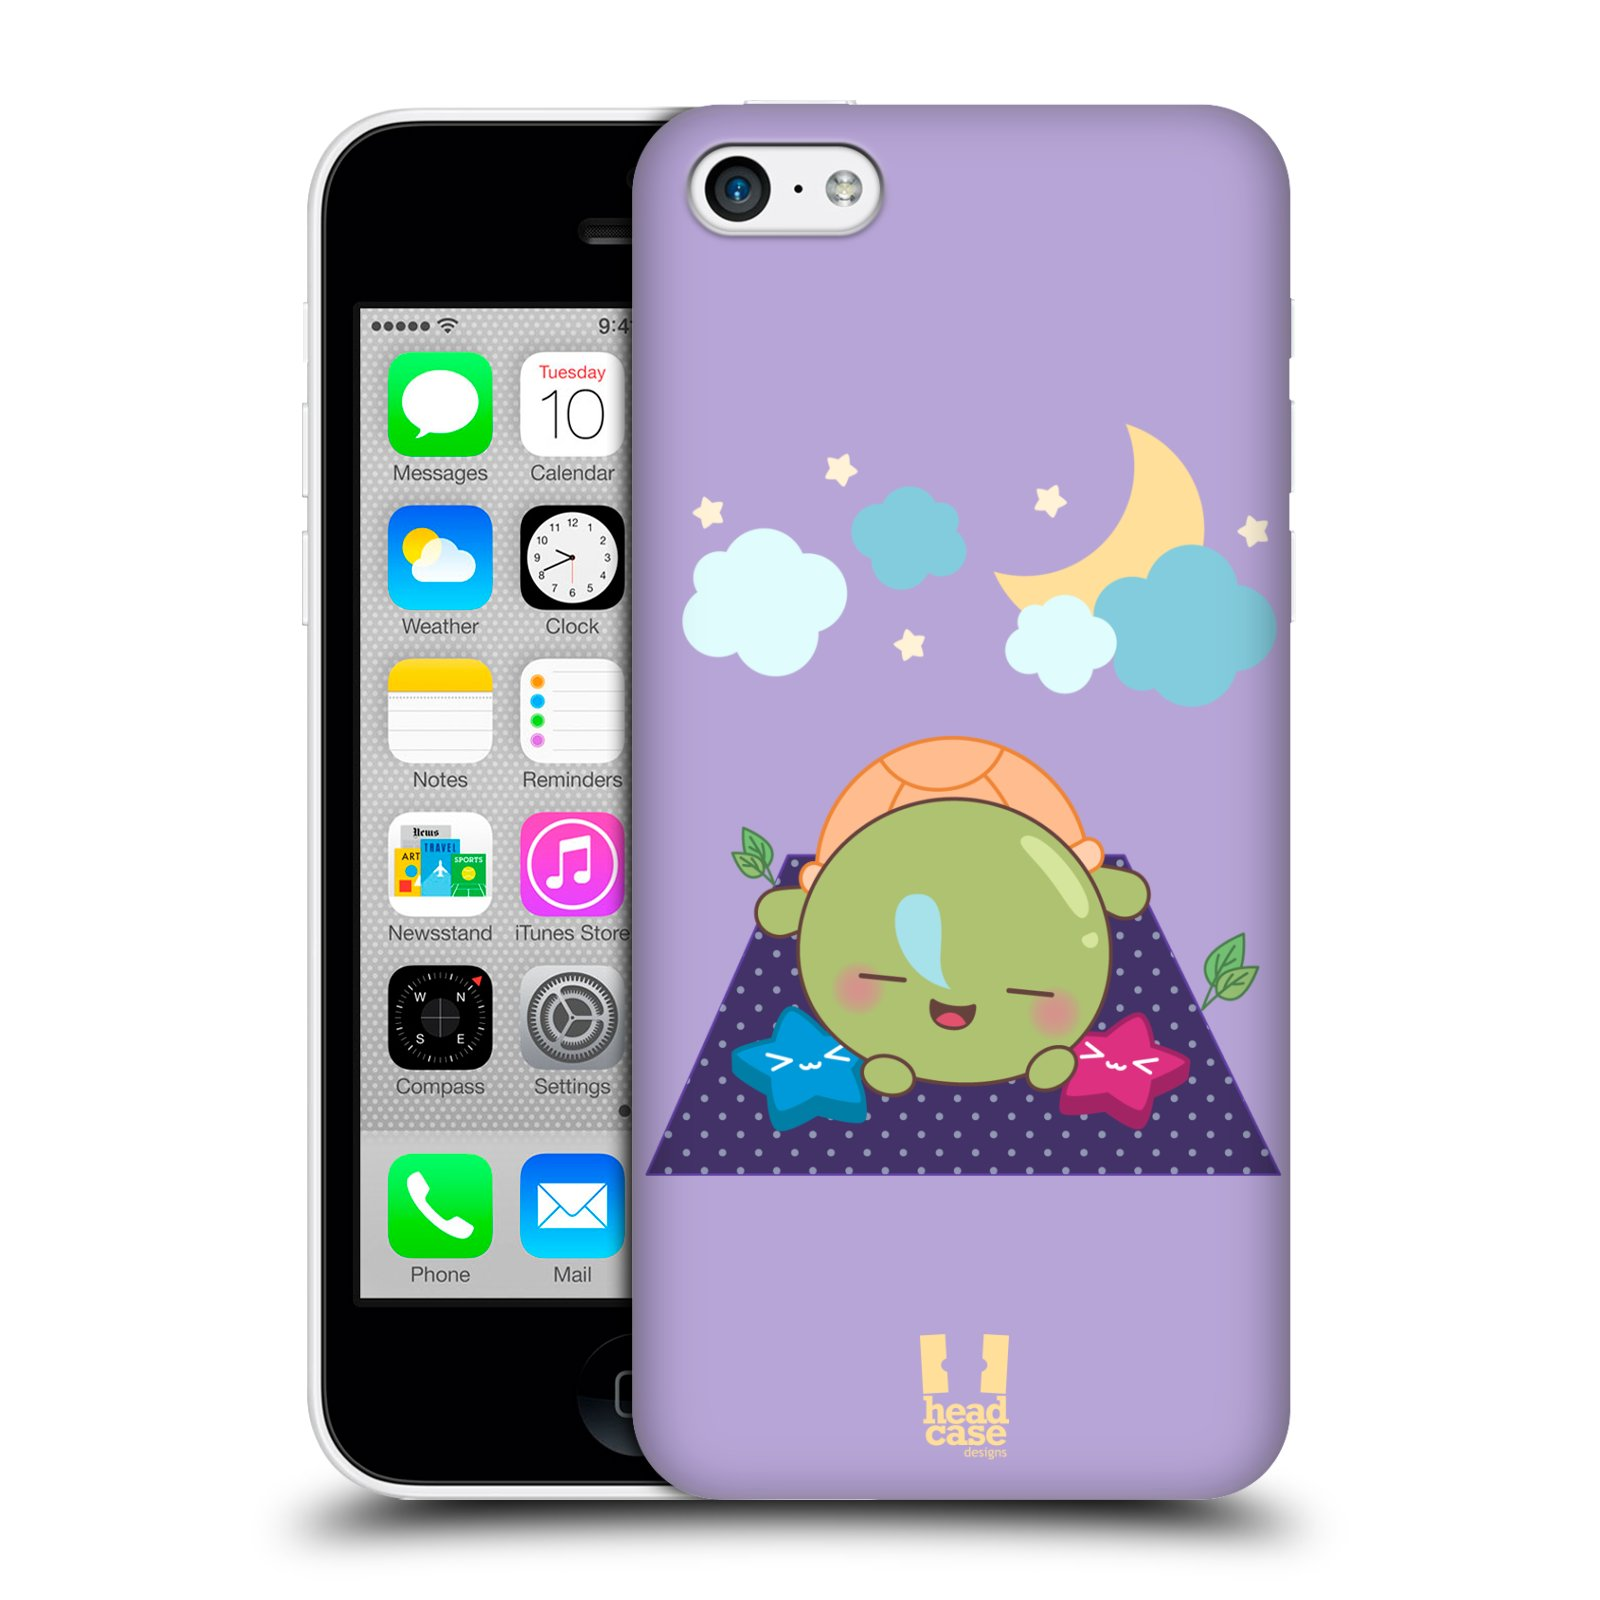 HEAD-CASE-DESIGNS-KAWAII-TURTLE-PROTECTIVE-BACK-CASE-COVER-FOR-APPLE-iPHONE-5C